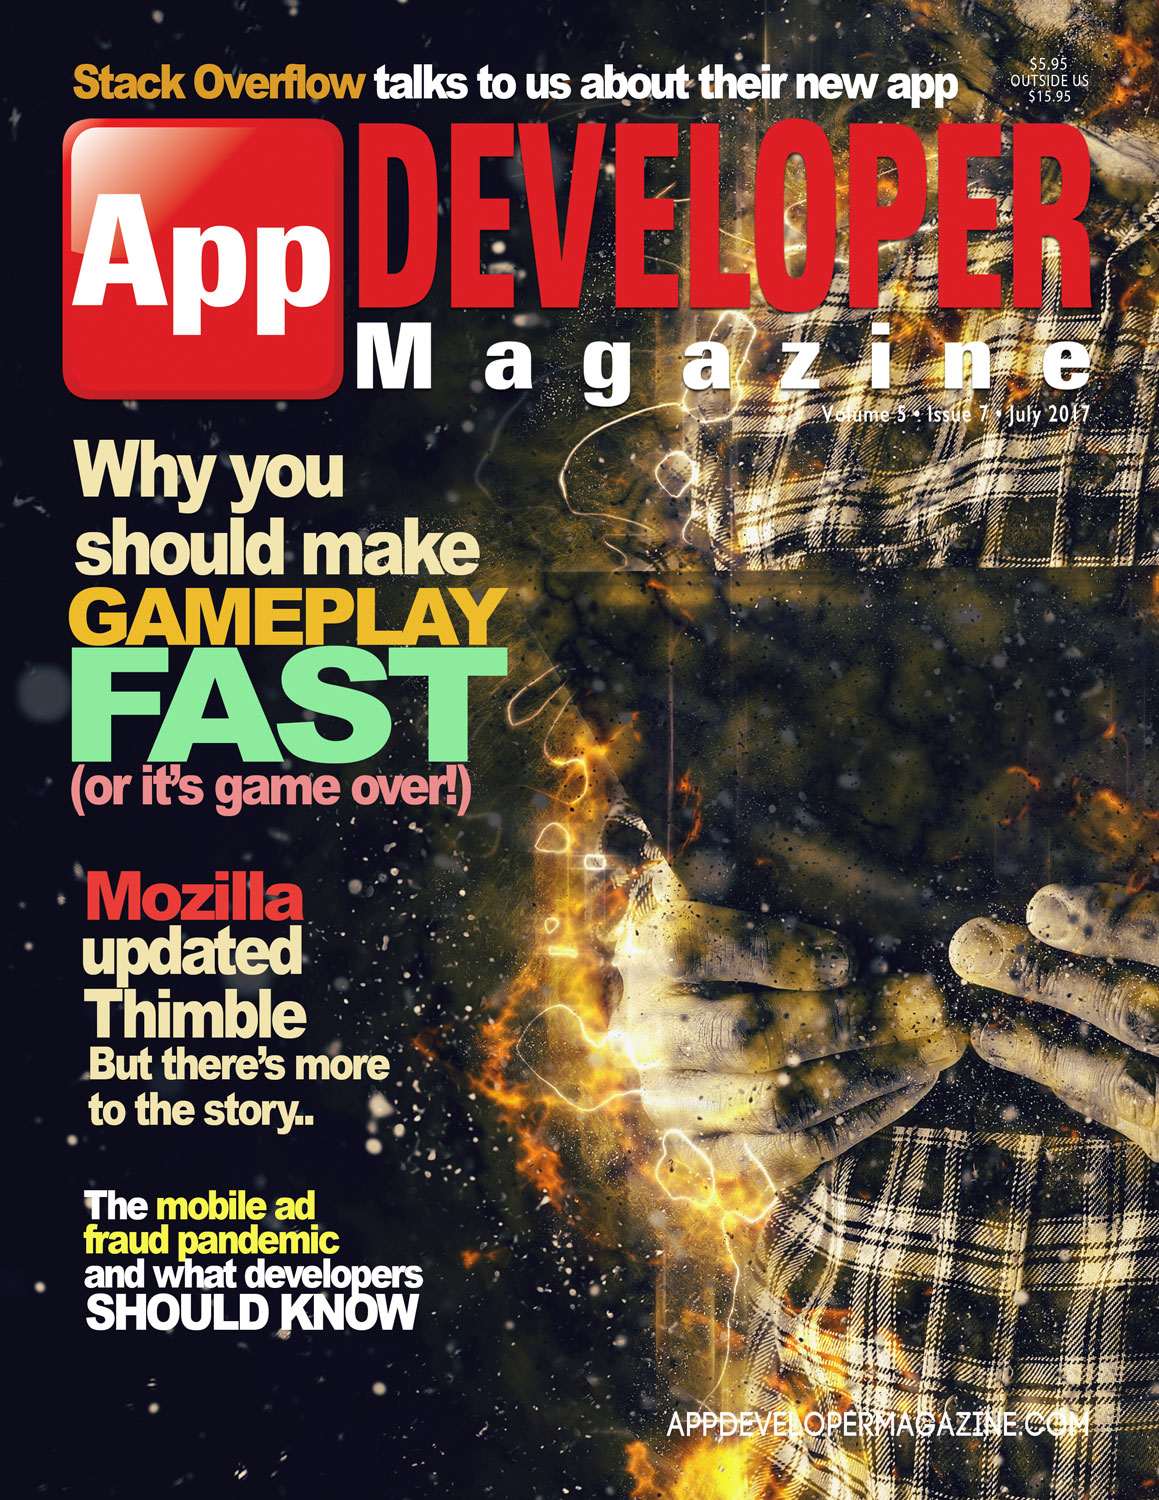 App Developer Magazine July 2017 Cover